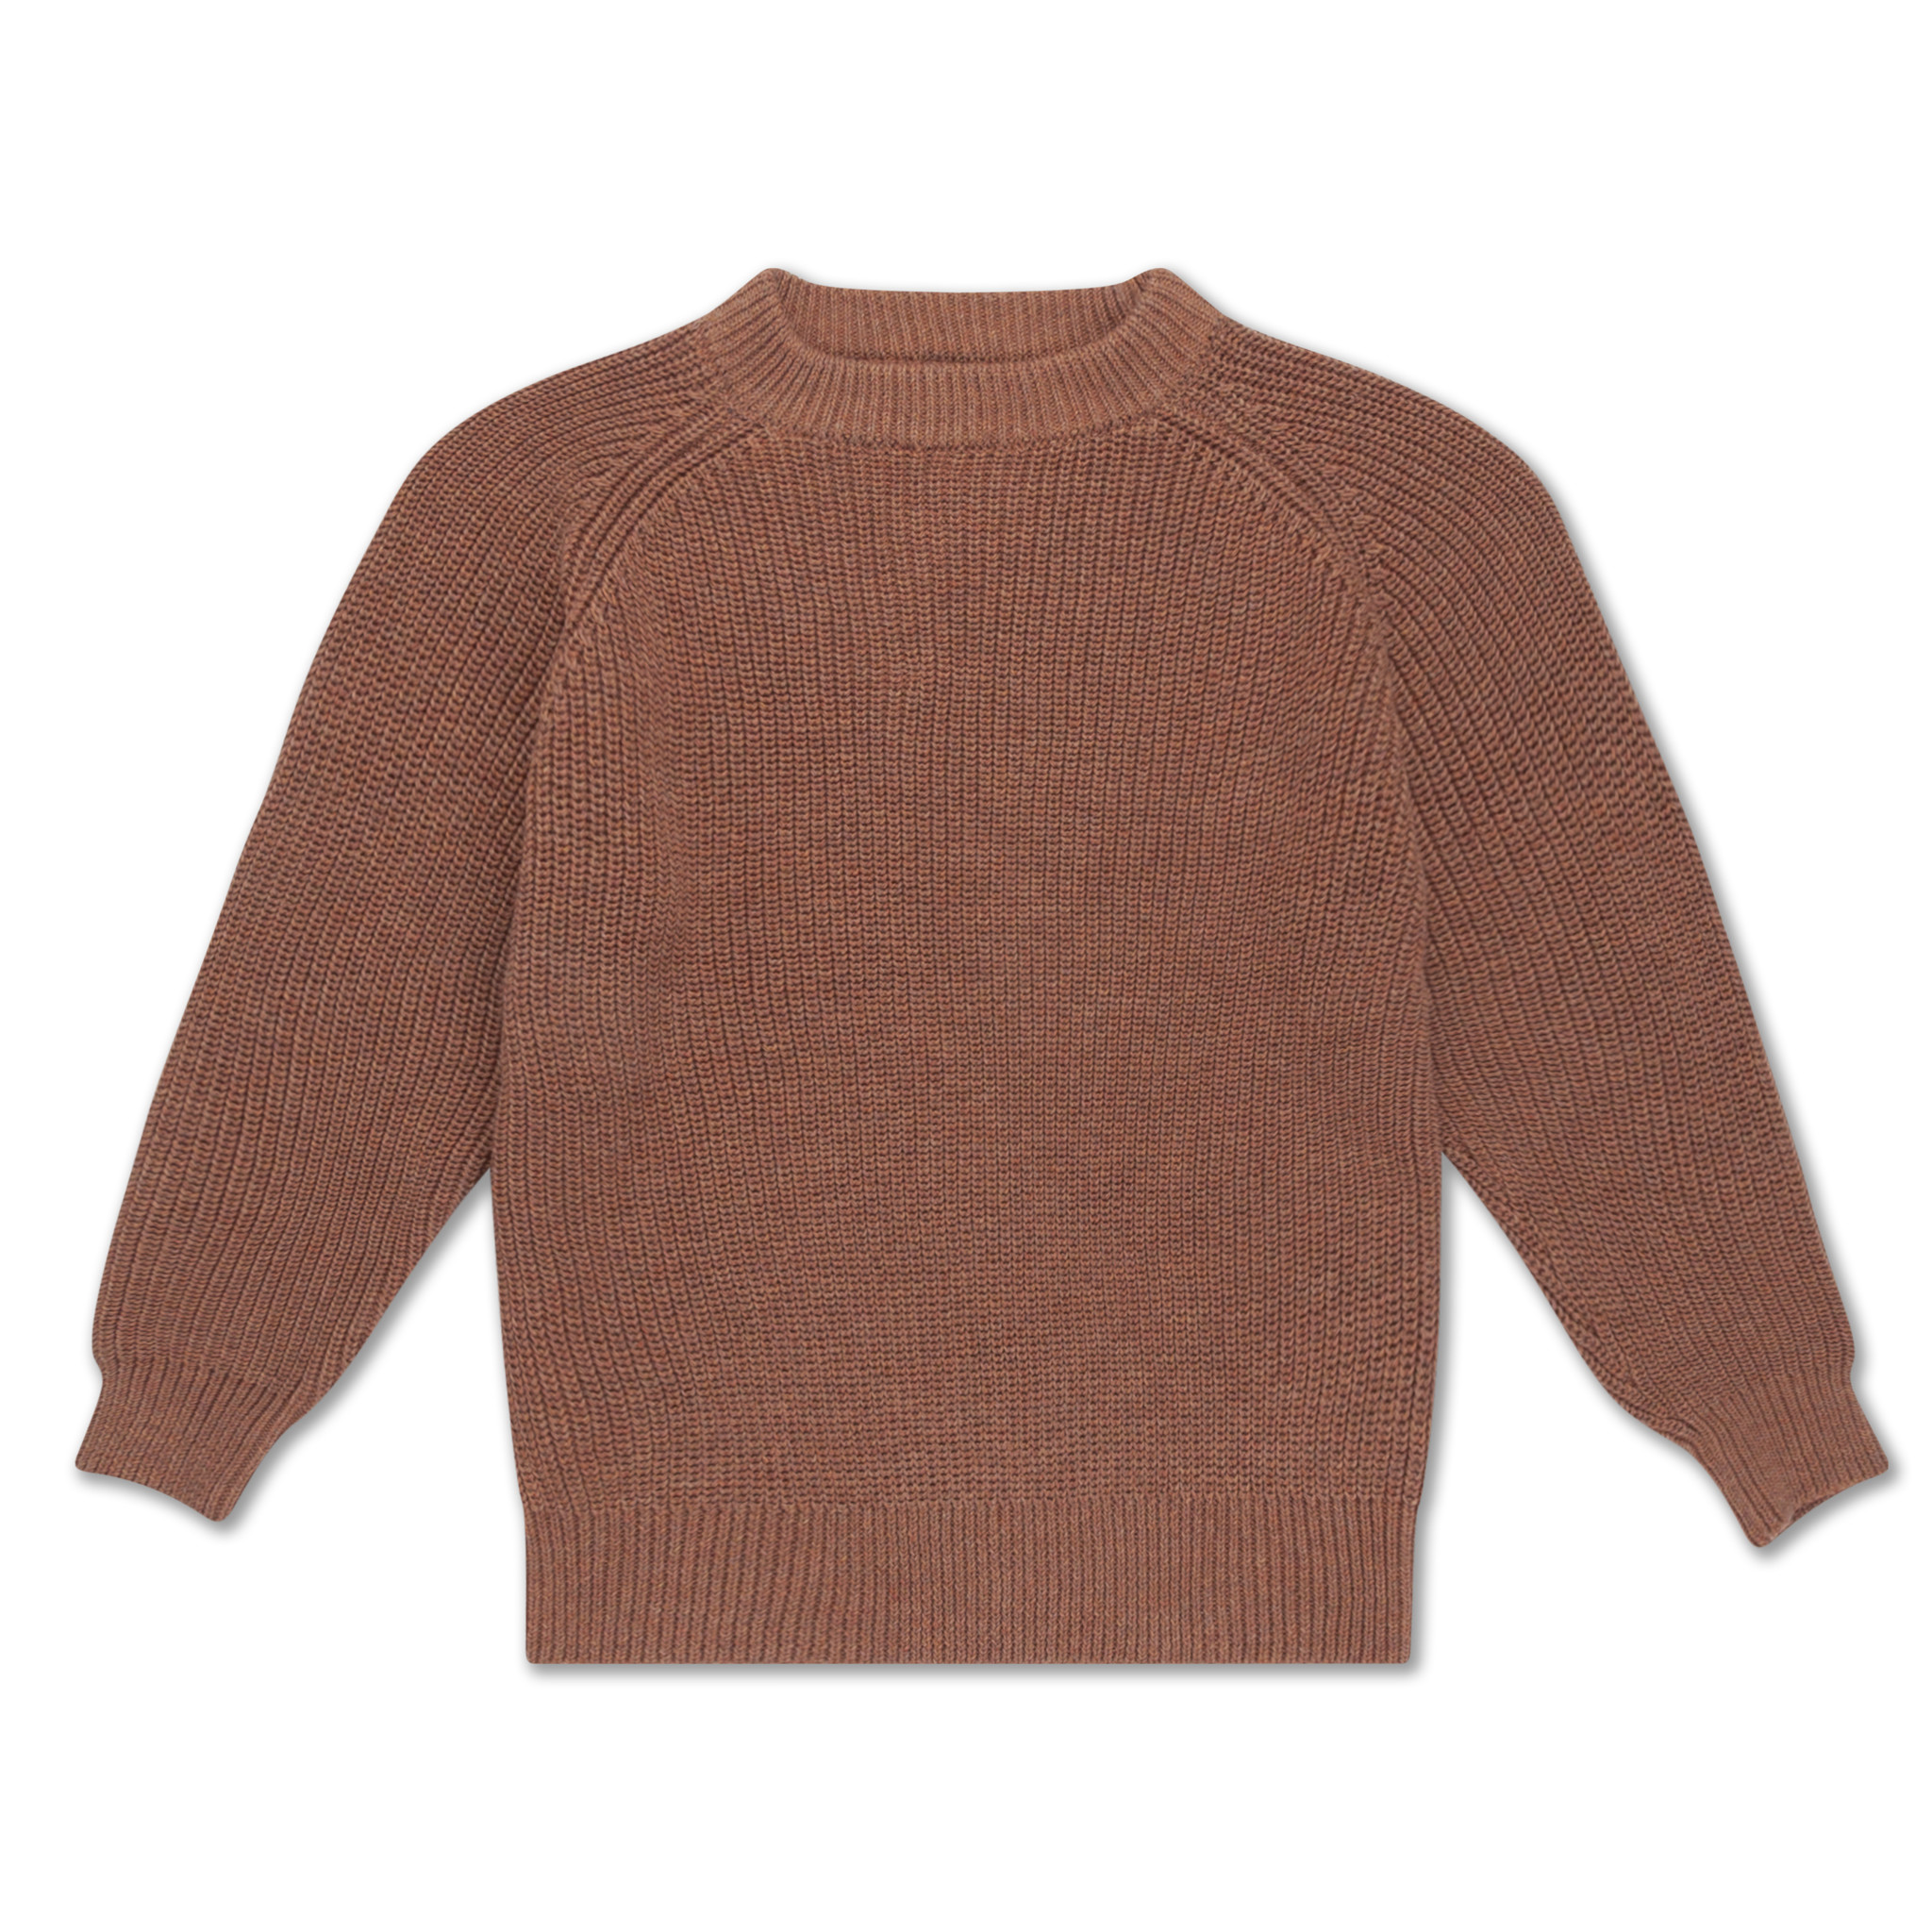 Knit sweater - Rusty Marble-1